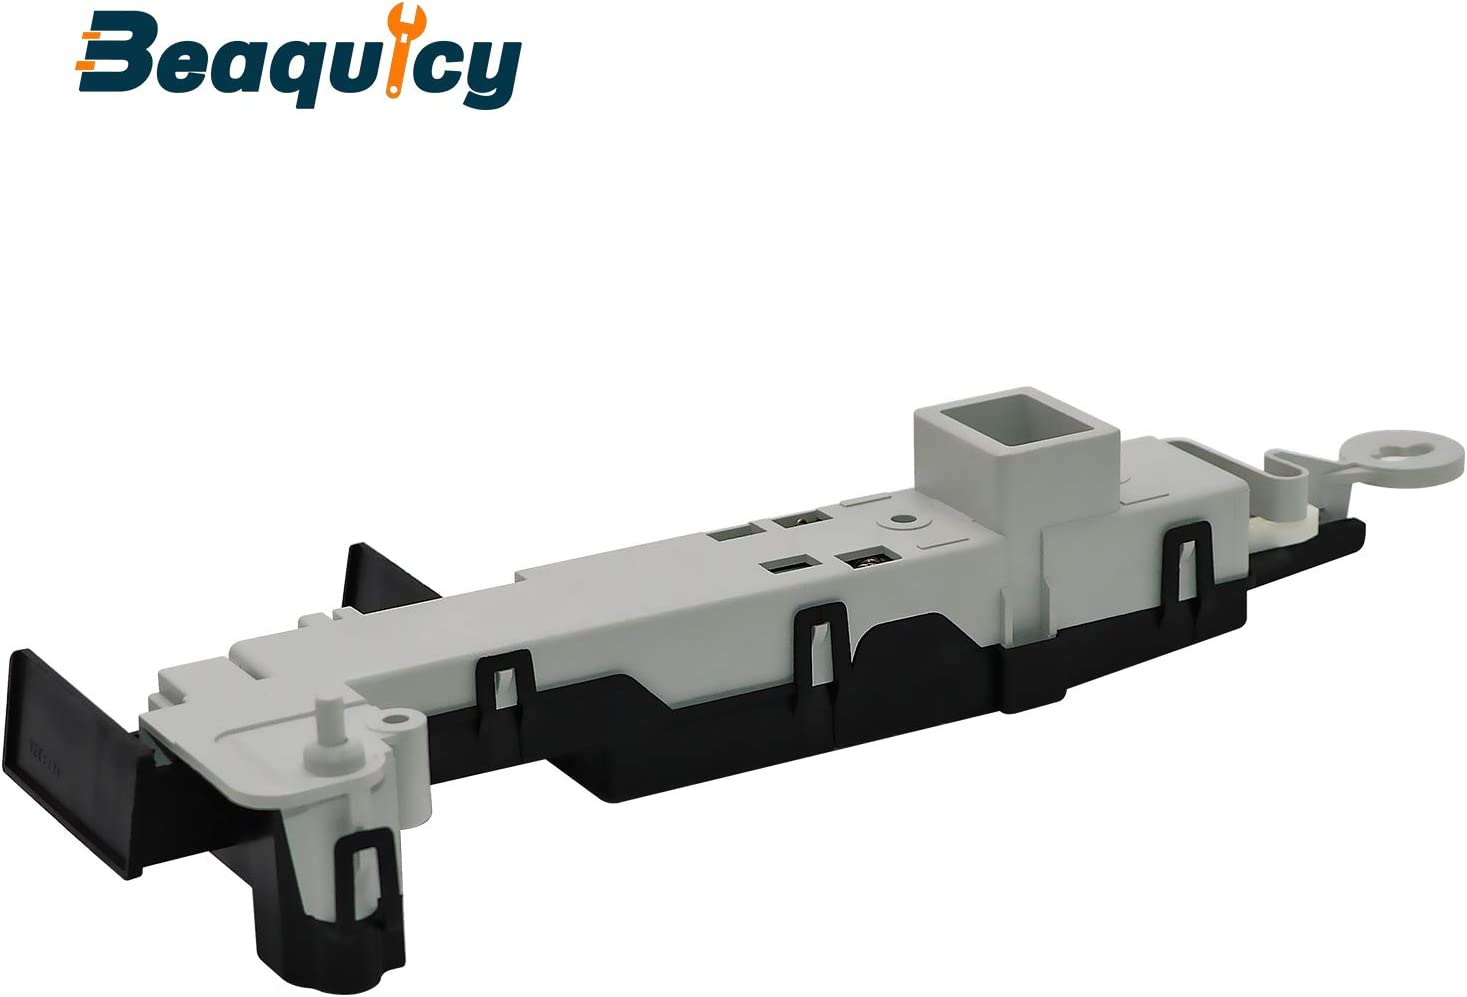 1 YEAR WARRANTY 461970200692 Washer Door Lock Switch by Beaquicy Replacement for Kenmore Sears Washing Machine GENUINE Part Original Version by OEM Manufacturer